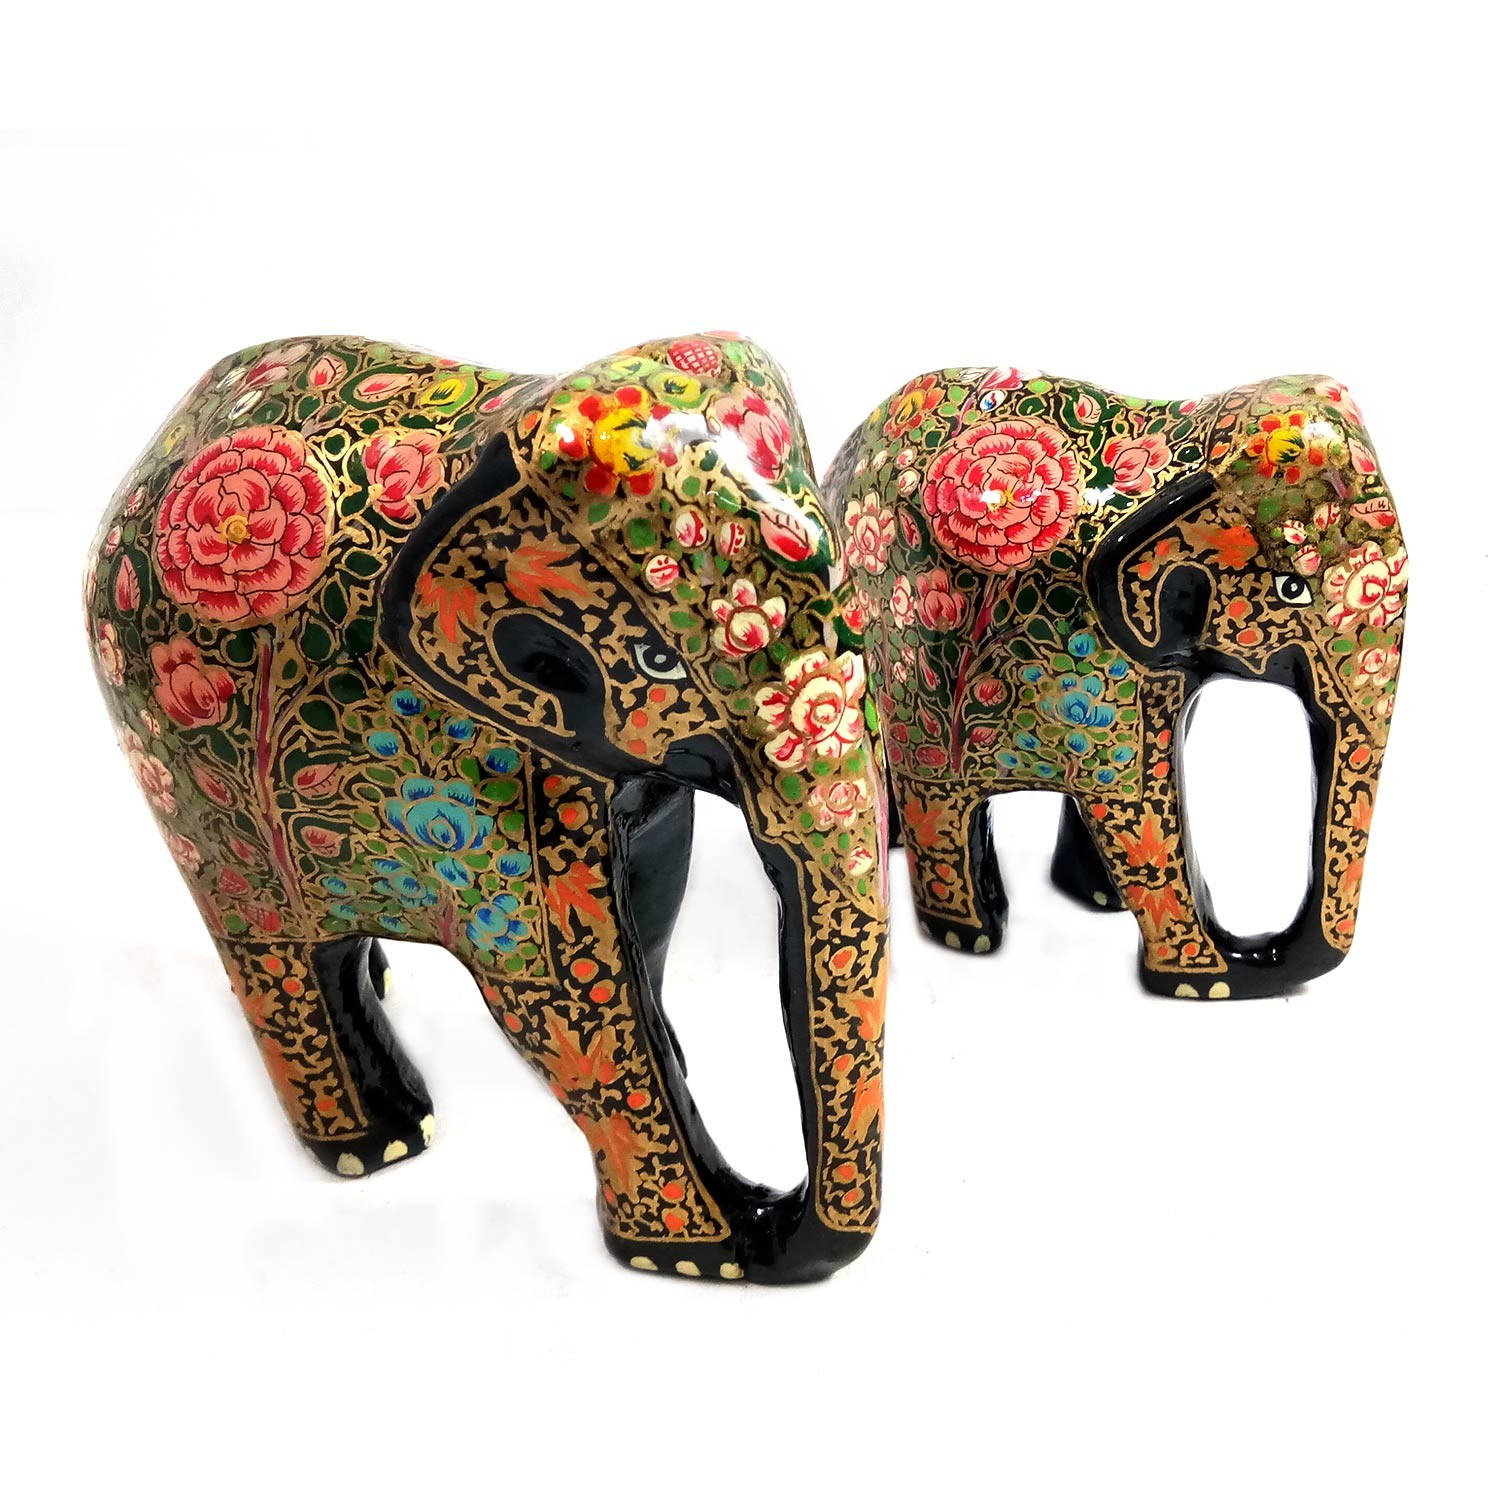 Handmade exclusive paper mache multicolor Decorative Elephant Set Of 2 By Rural Artisan.